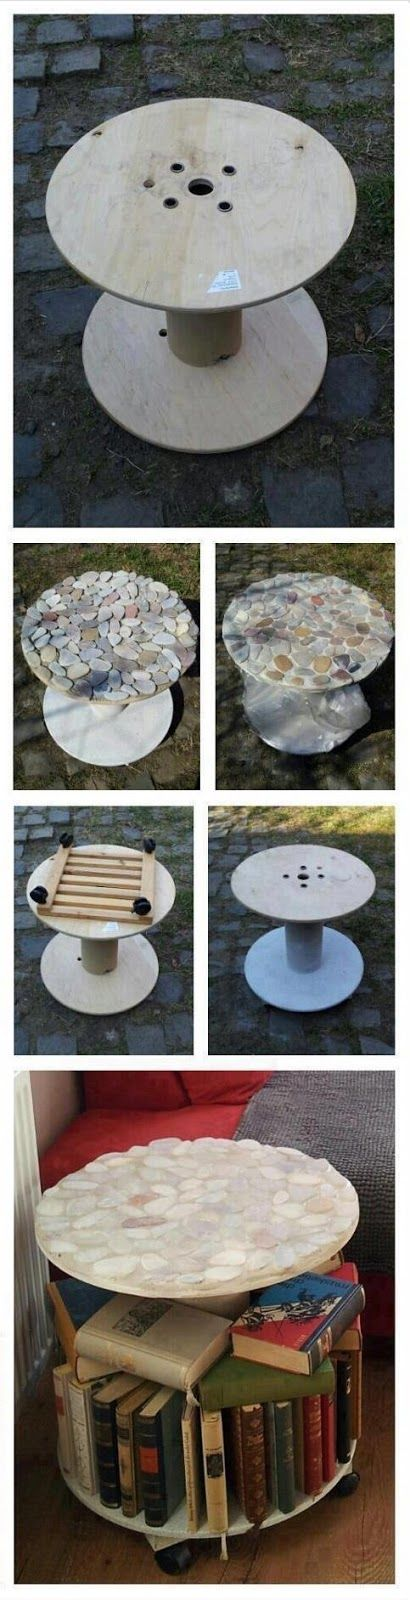 DIY Table by Recycling Spool